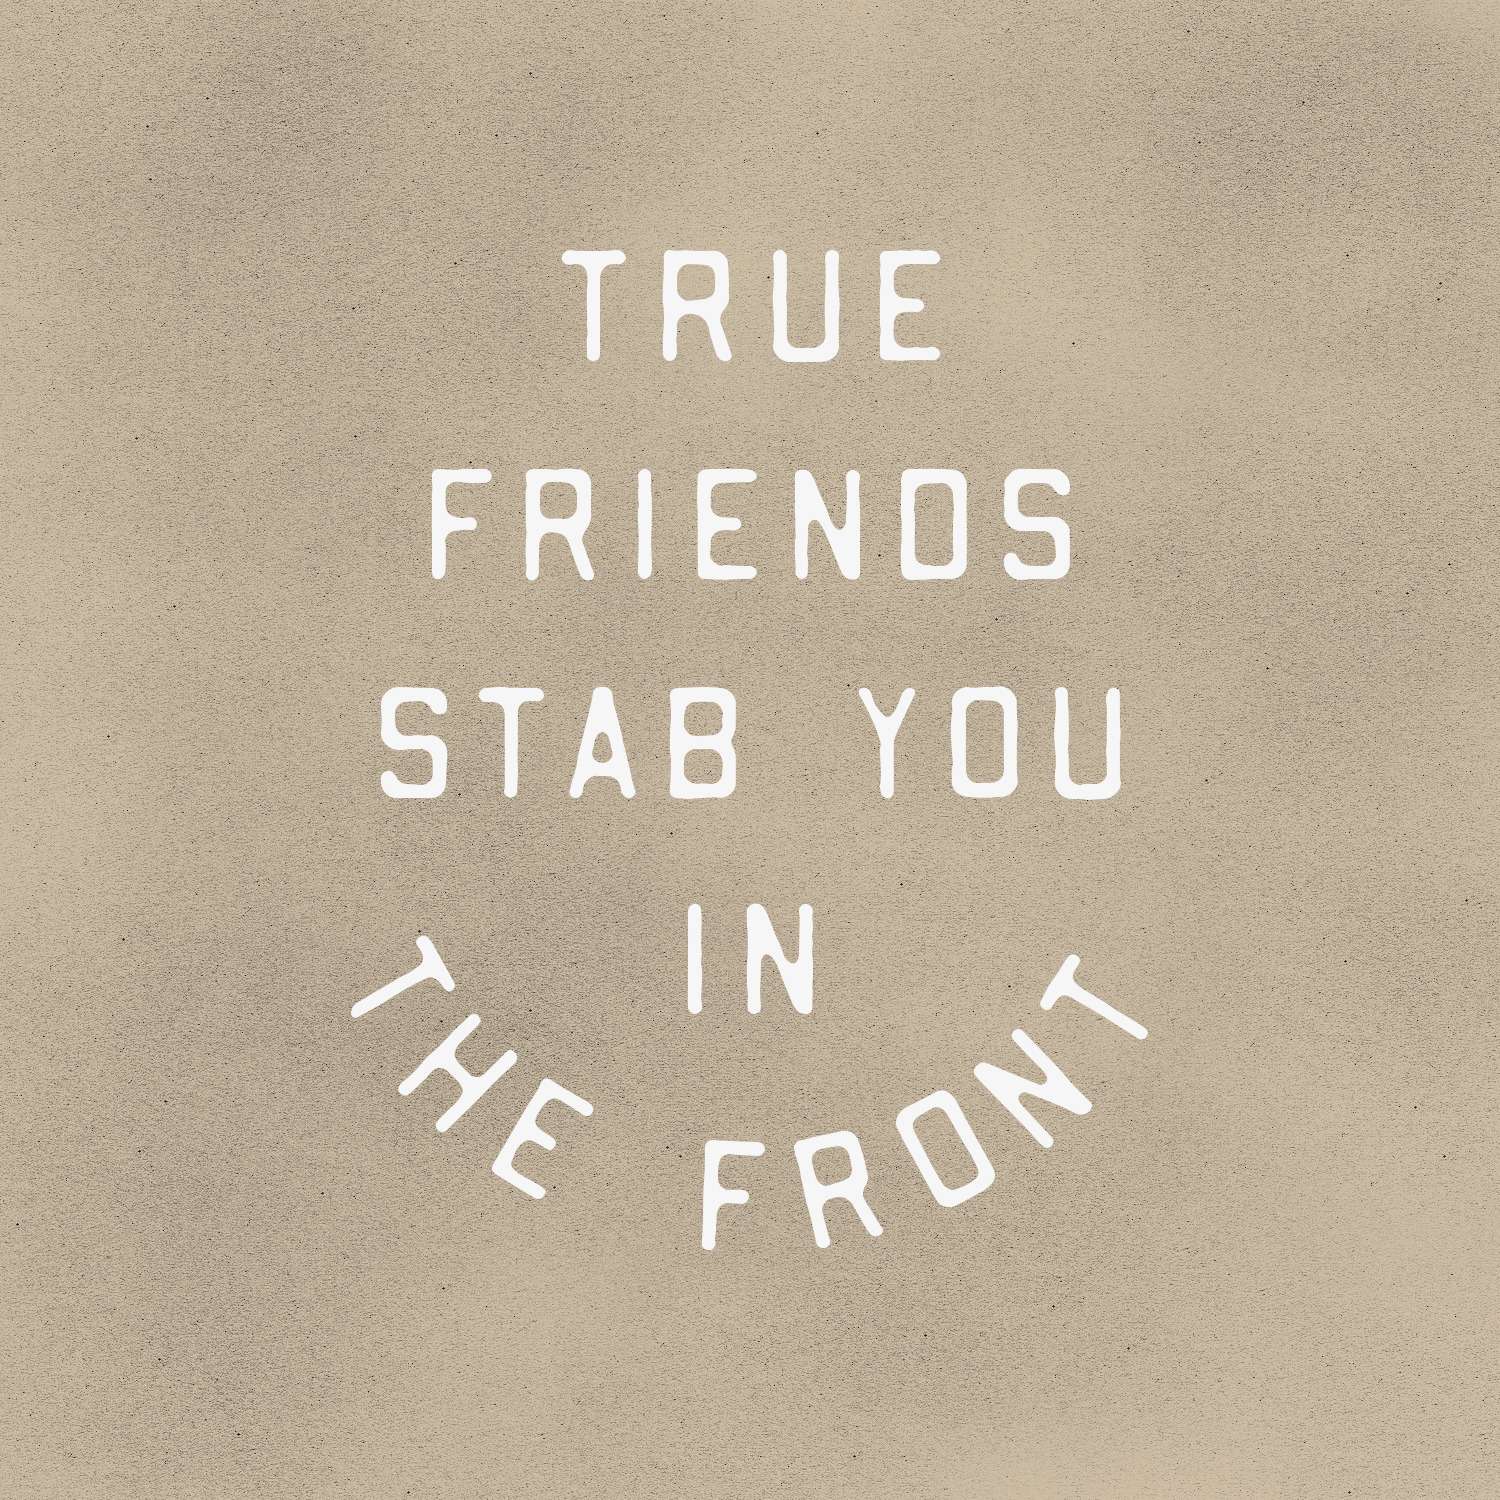 true friends stab you in the front.png